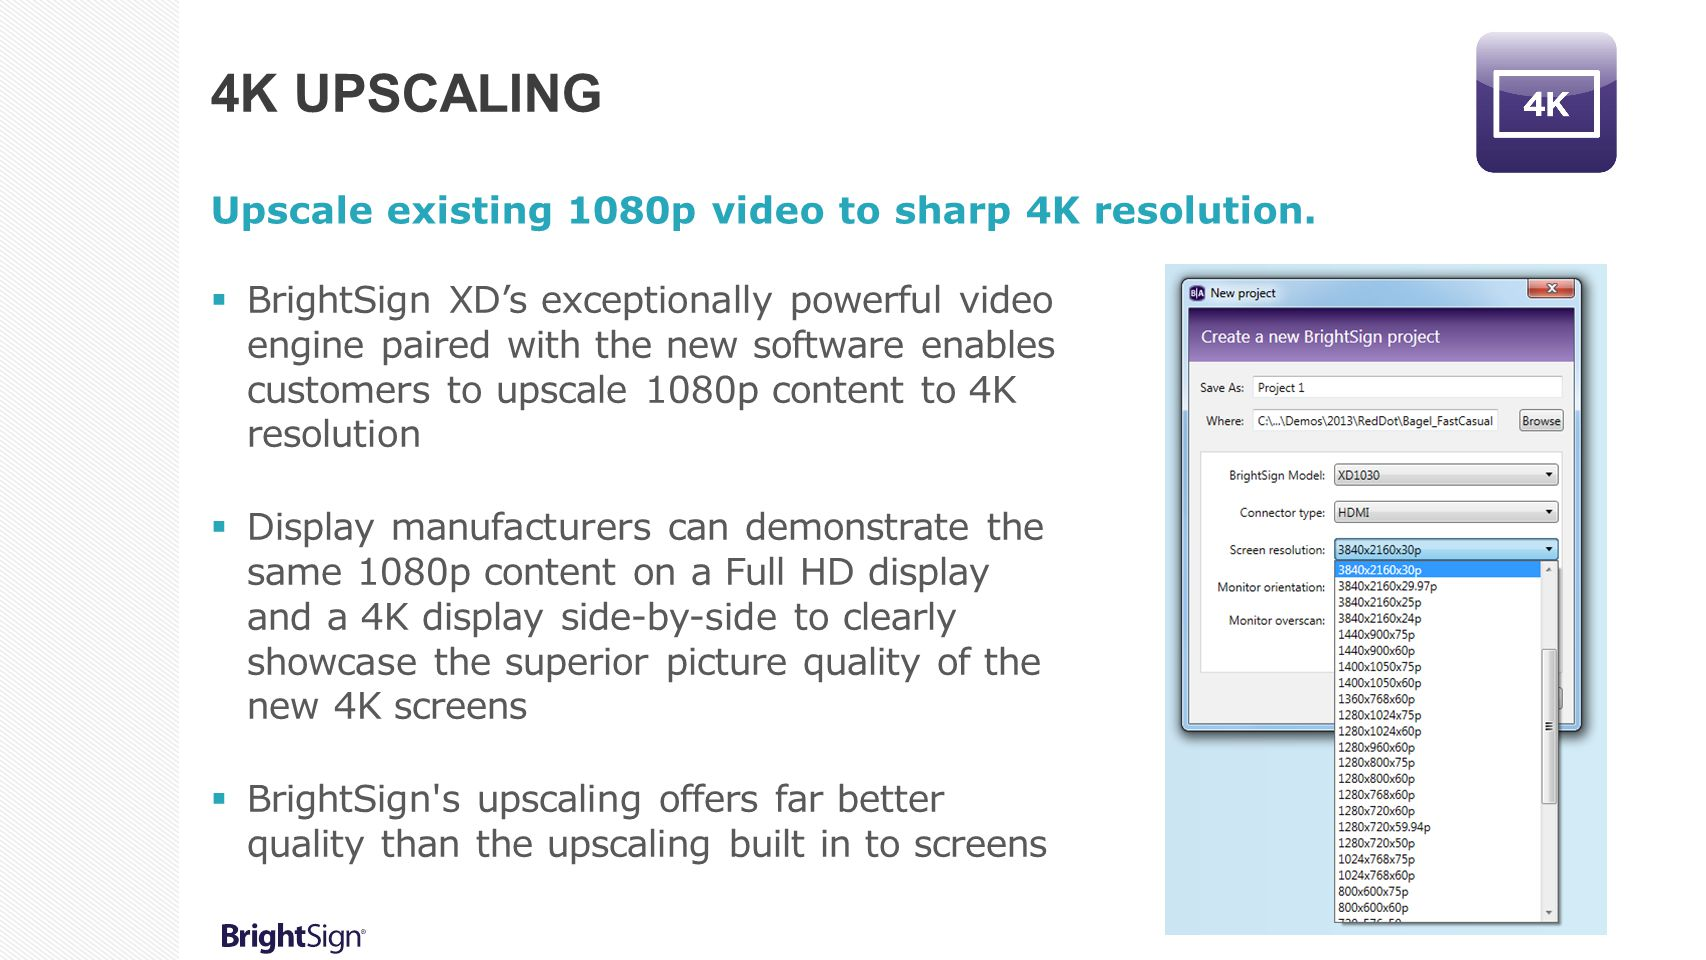 4K Upscaling Upscale existing 1080p video to sharp 4K resolution.